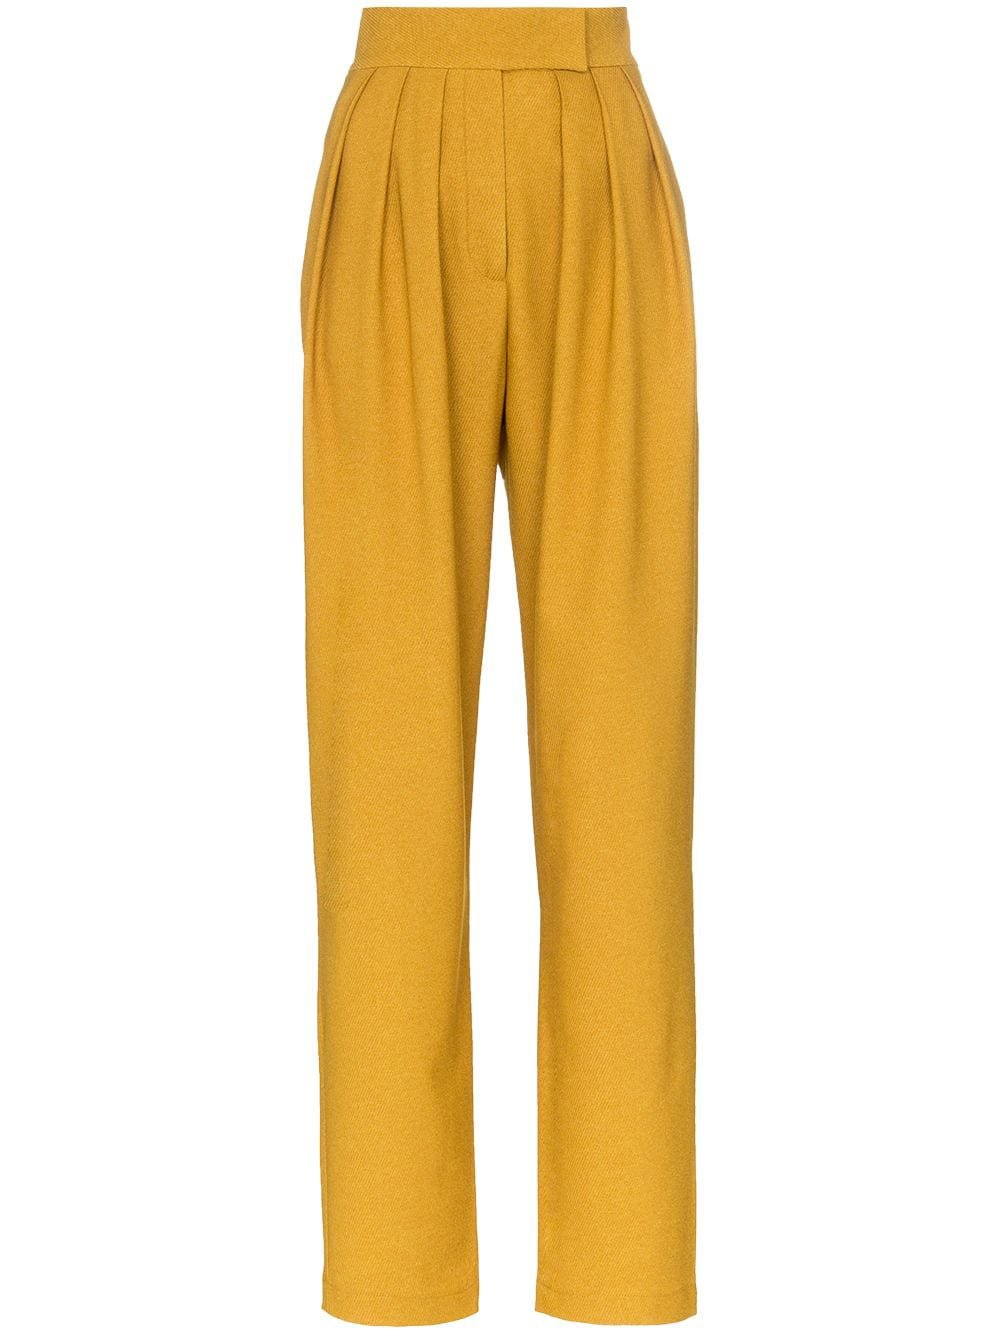 Matériel high-waisted pleated trousers £265 - Fast Global Shipping, Free Returns